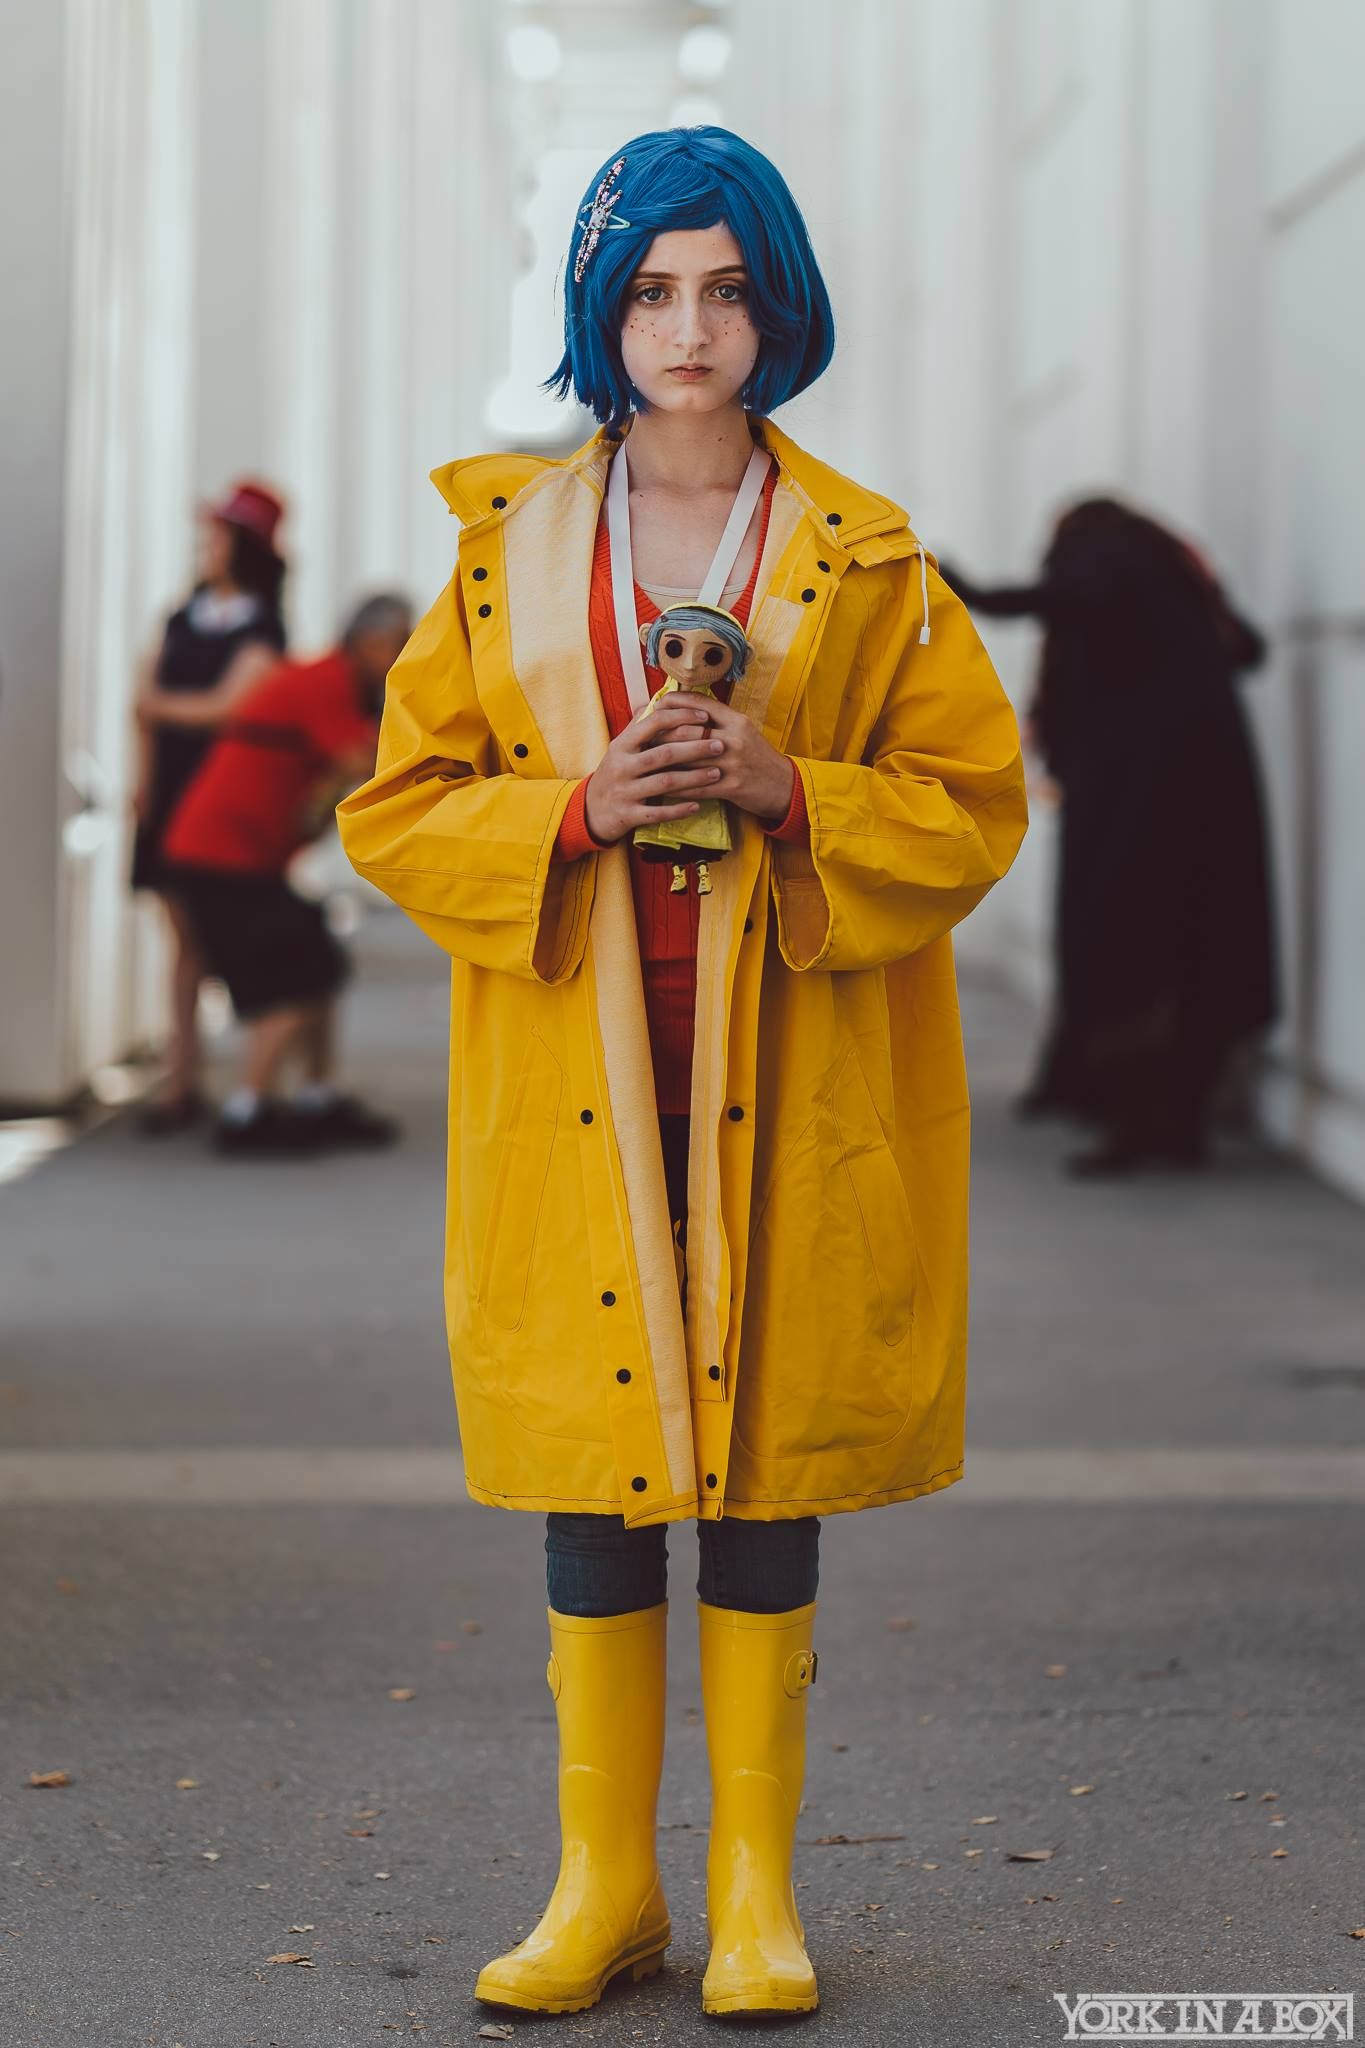 Coraline Cosplay At Comic Con Revolution 2017 Comic Con Outfits Comic Con Costumes Comic Con Cosplay